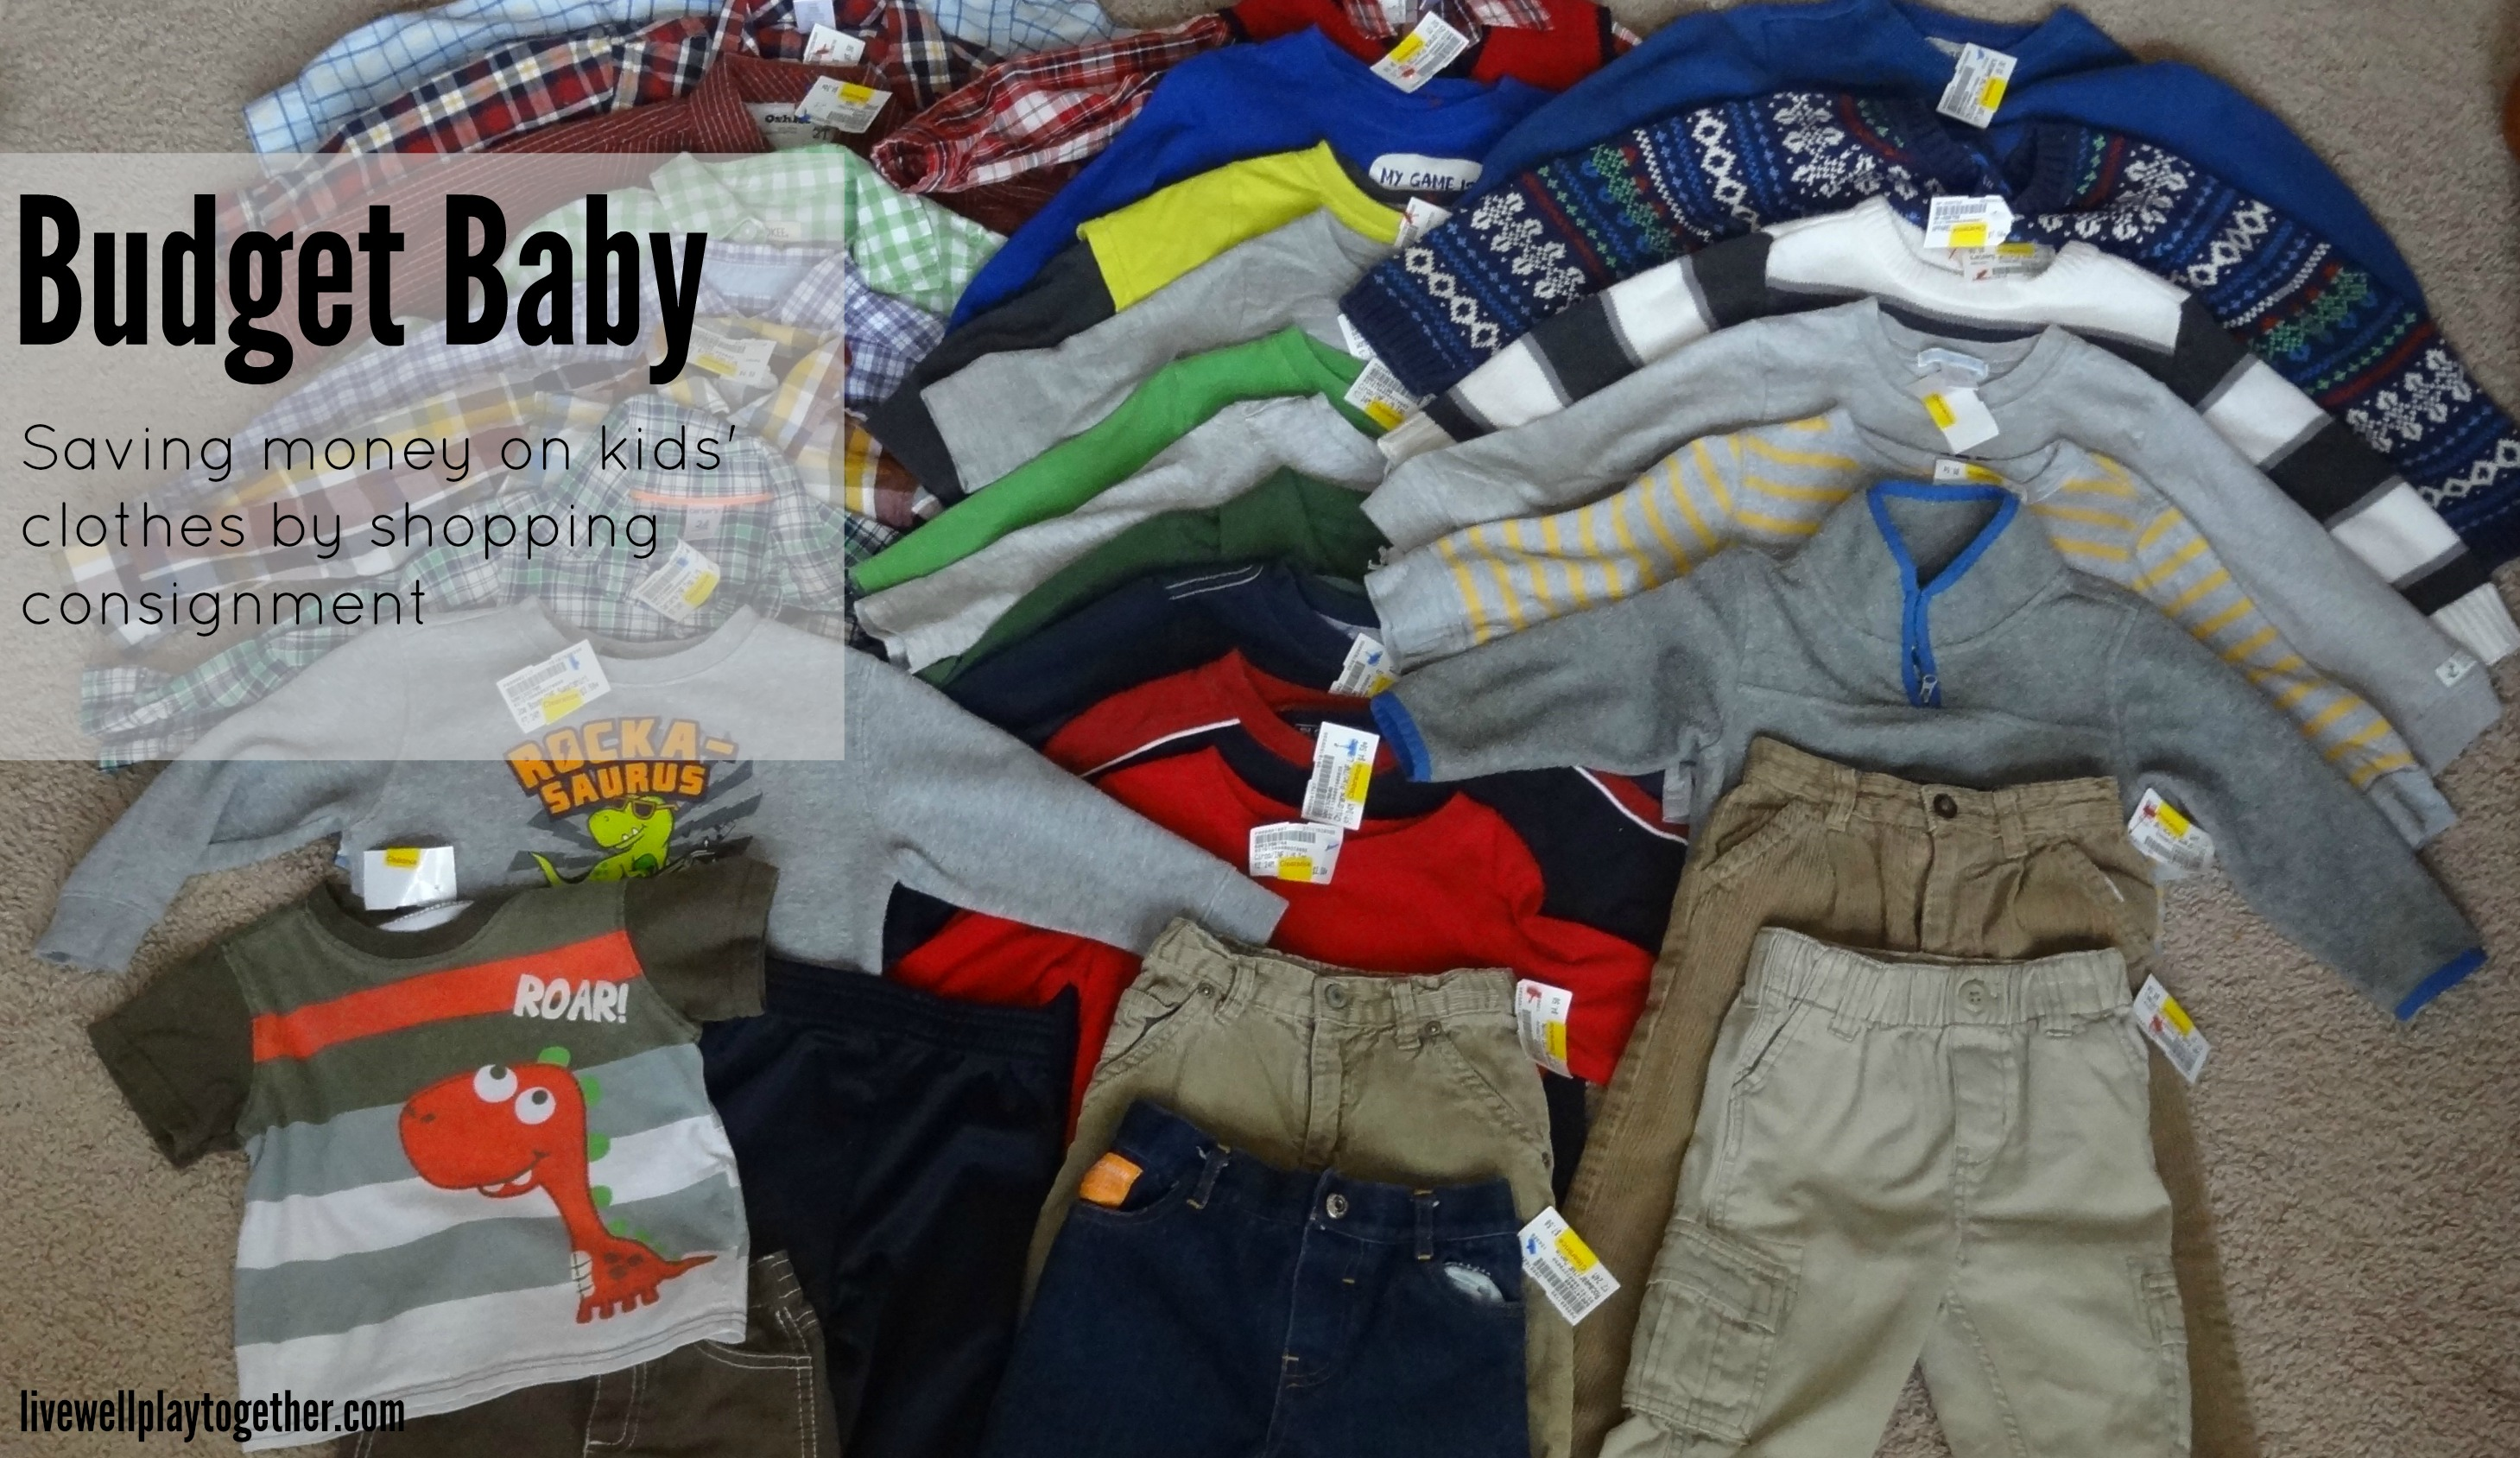 Budget Baby Saving Money By Shopping Consignment For Kids Clothes